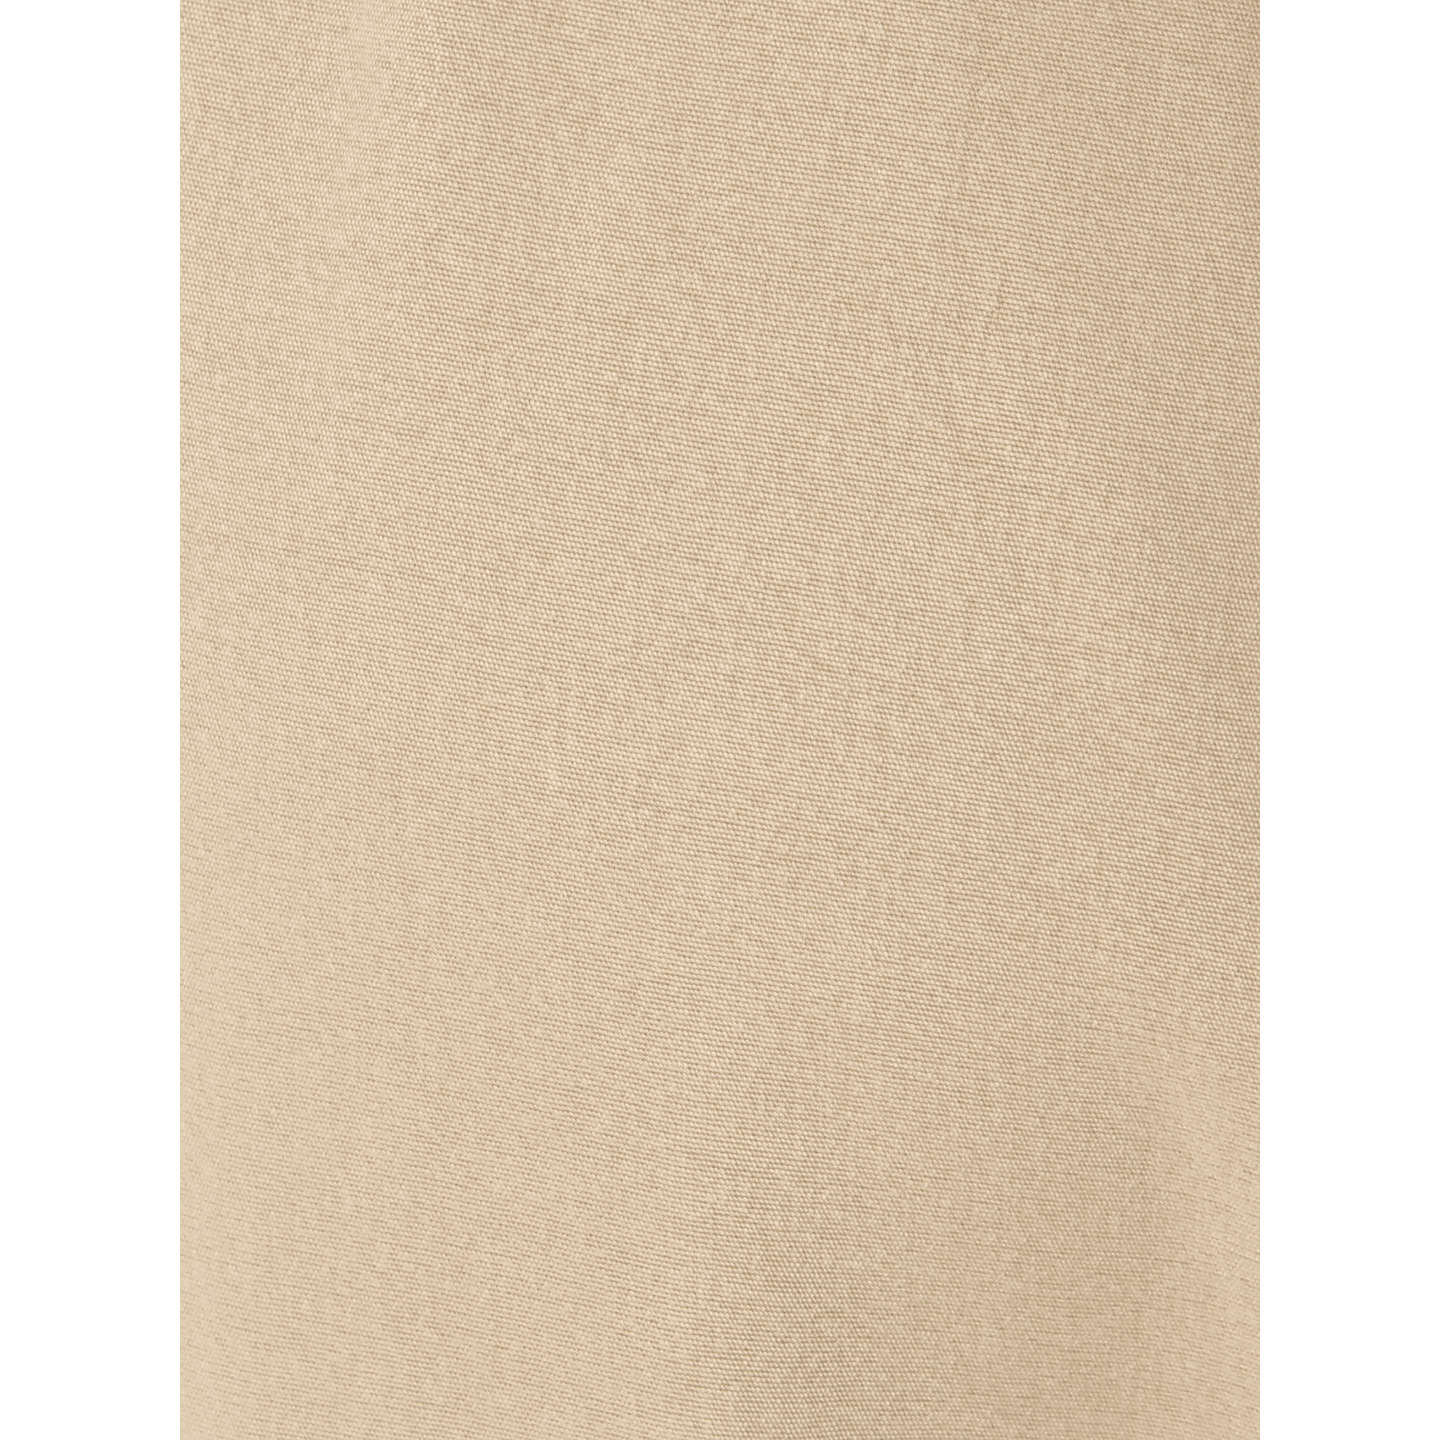 BuyPhase Eight Zipped Hem Trousers, Stone, 8 Online at johnlewis.com